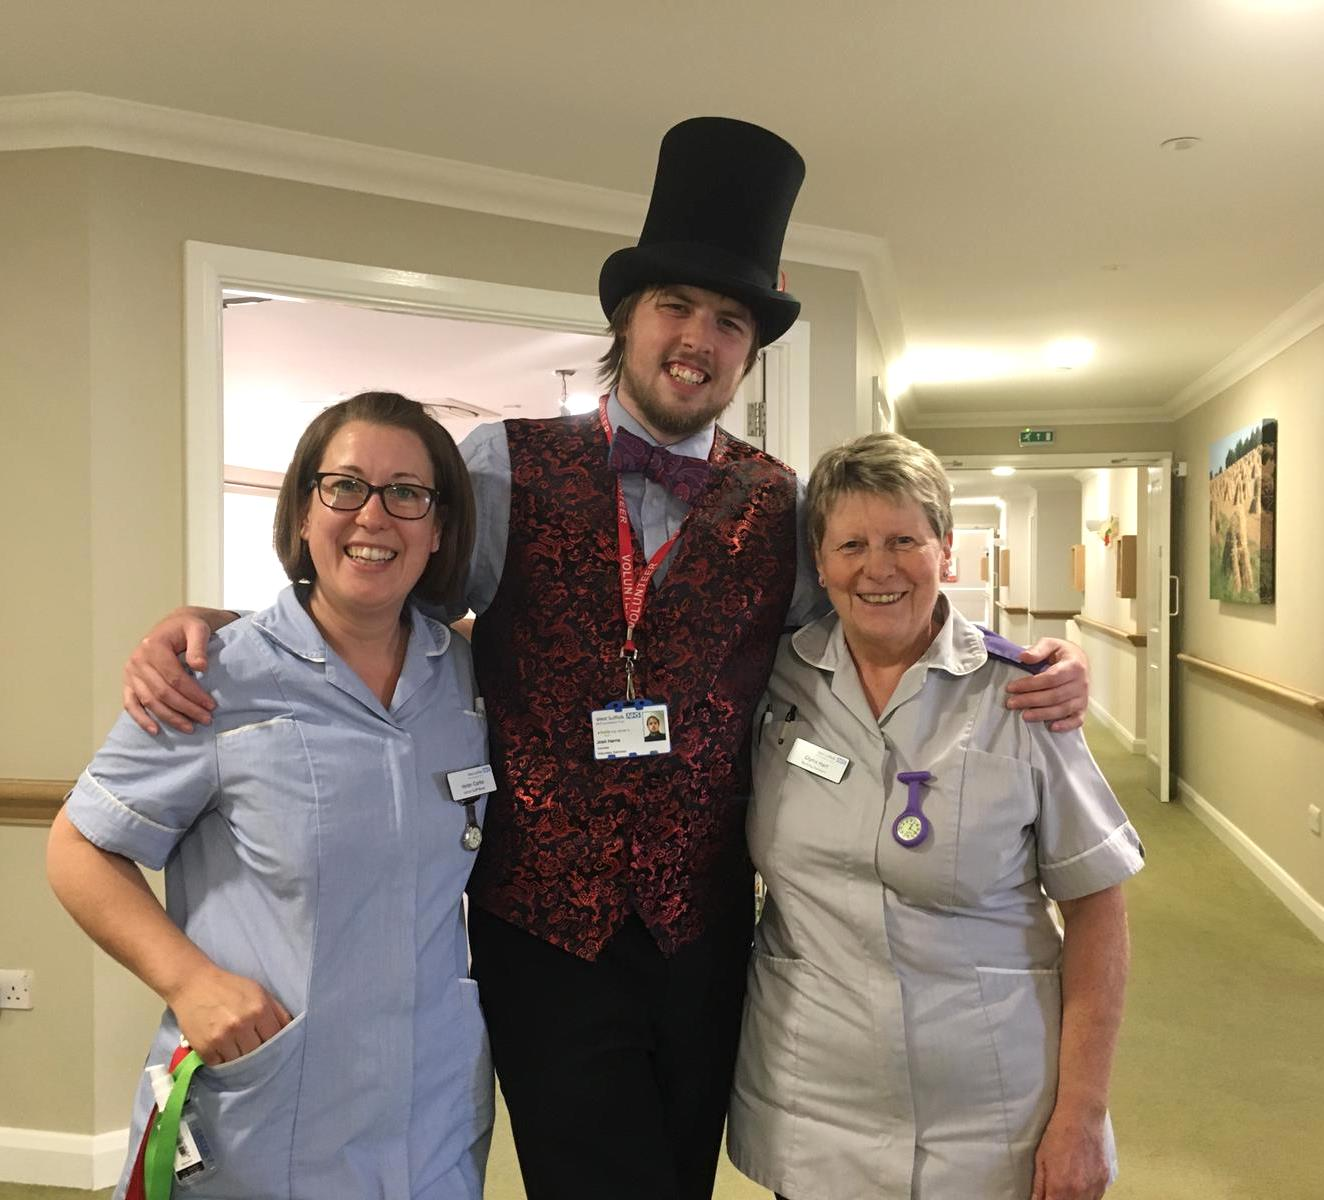 Left to right: Helen Clarke, senior staff nurse, storyteller volunteer Joshua Harris, and Glynis Hart, nursing assistant at the WSFT King Suite wing of Glastonbury Court care home